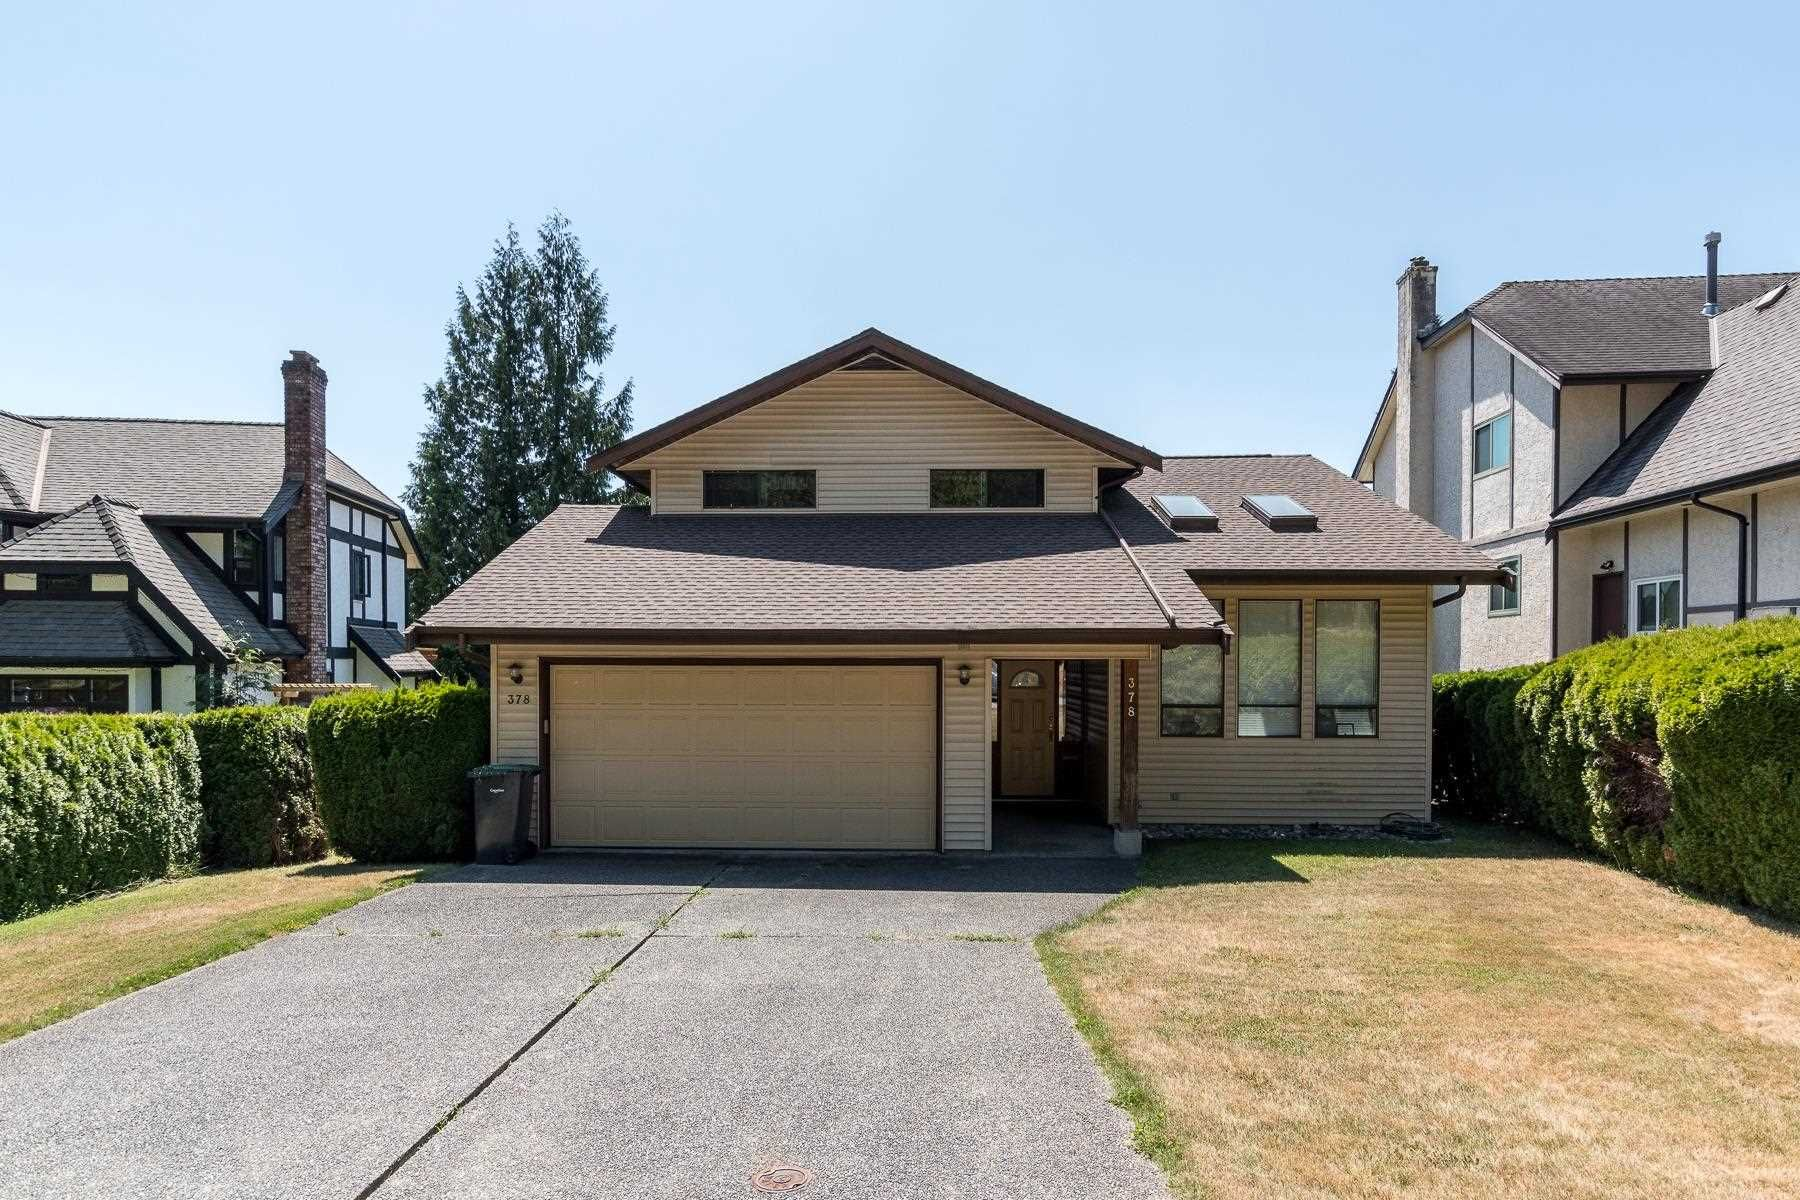 """Main Photo: 378 BALFOUR Drive in Coquitlam: Coquitlam East House for sale in """"DARTMOOR HEIGHTS"""" : MLS®# R2600428"""